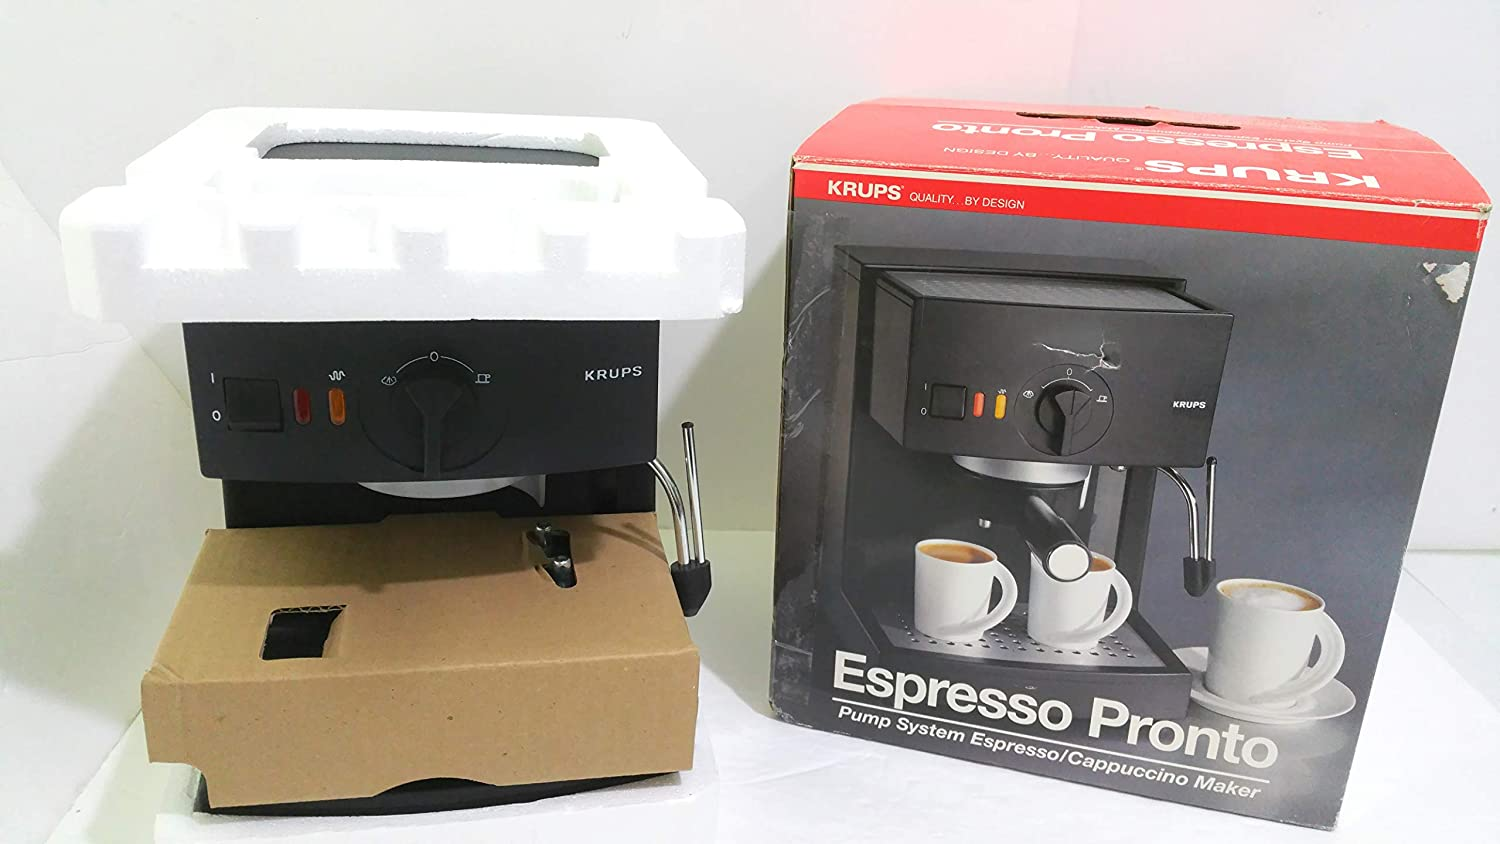 Amazon.com: Krups Espresso Pronto # 988: Kitchen & Dining